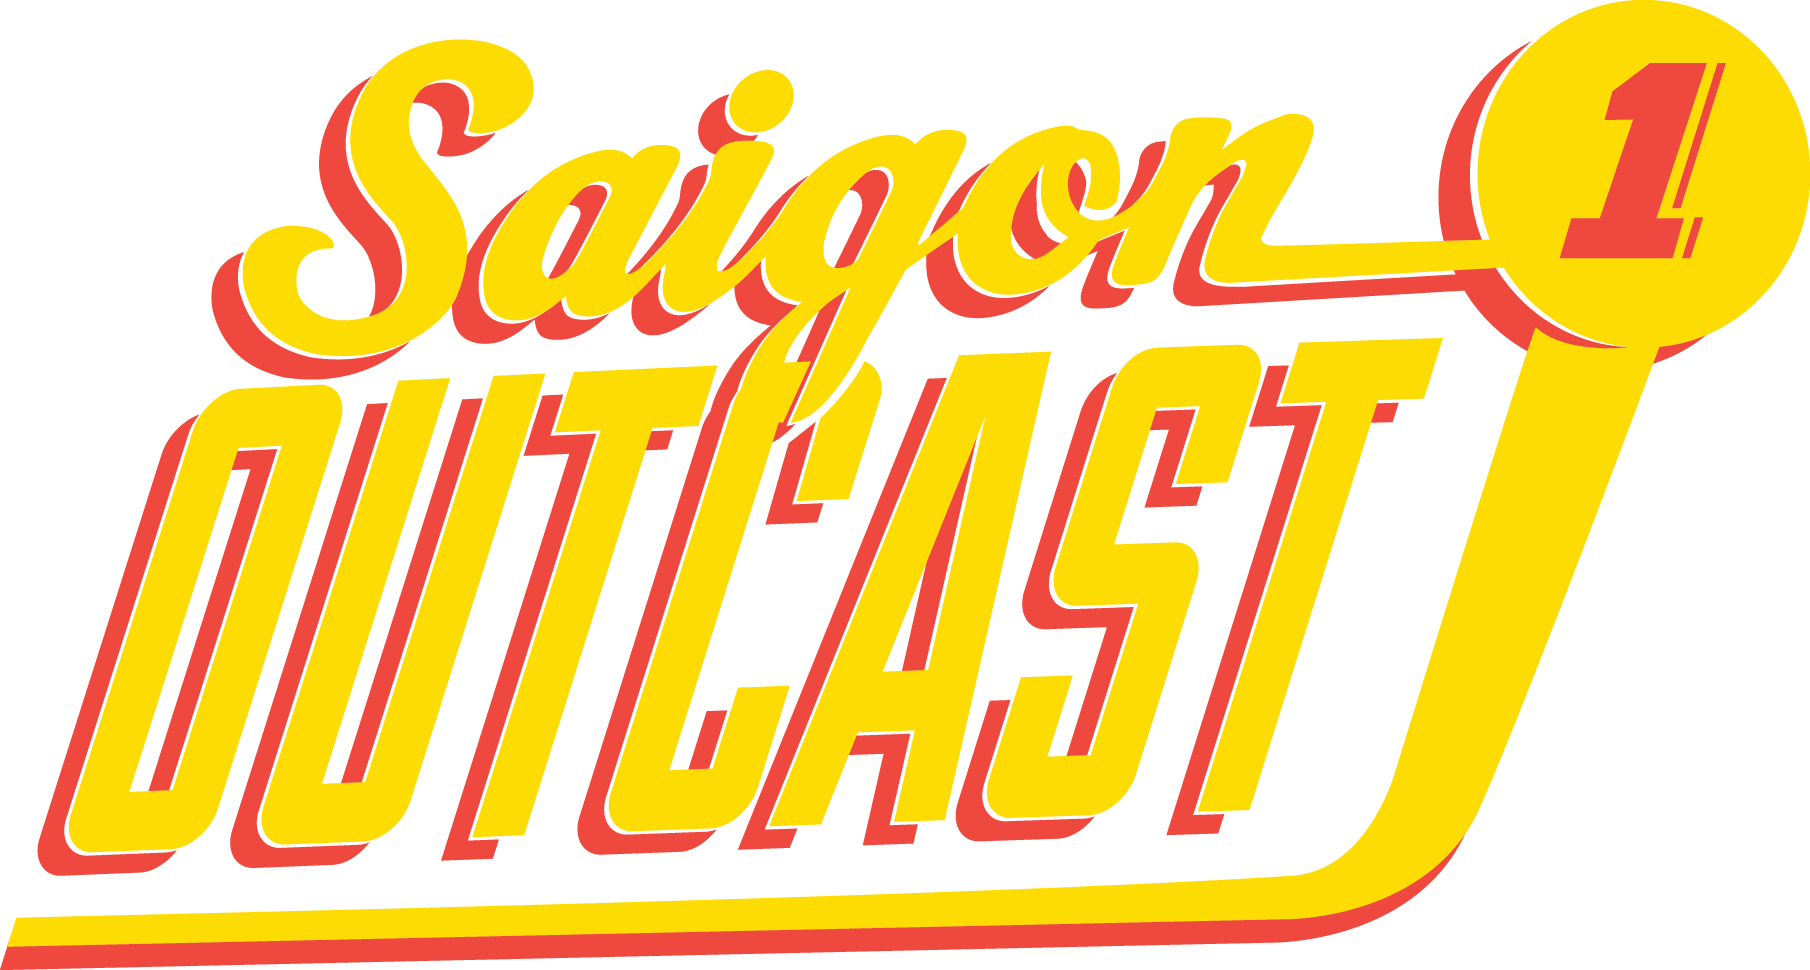 Saigon Outcast - We're located within Saigon Outcast, an event space holding a full restaurant and bar. On any weekend, you're likely to find live music, a farmers market, or some kind of festival. Oh yeah, there's also a mini ramp for skateboarding!